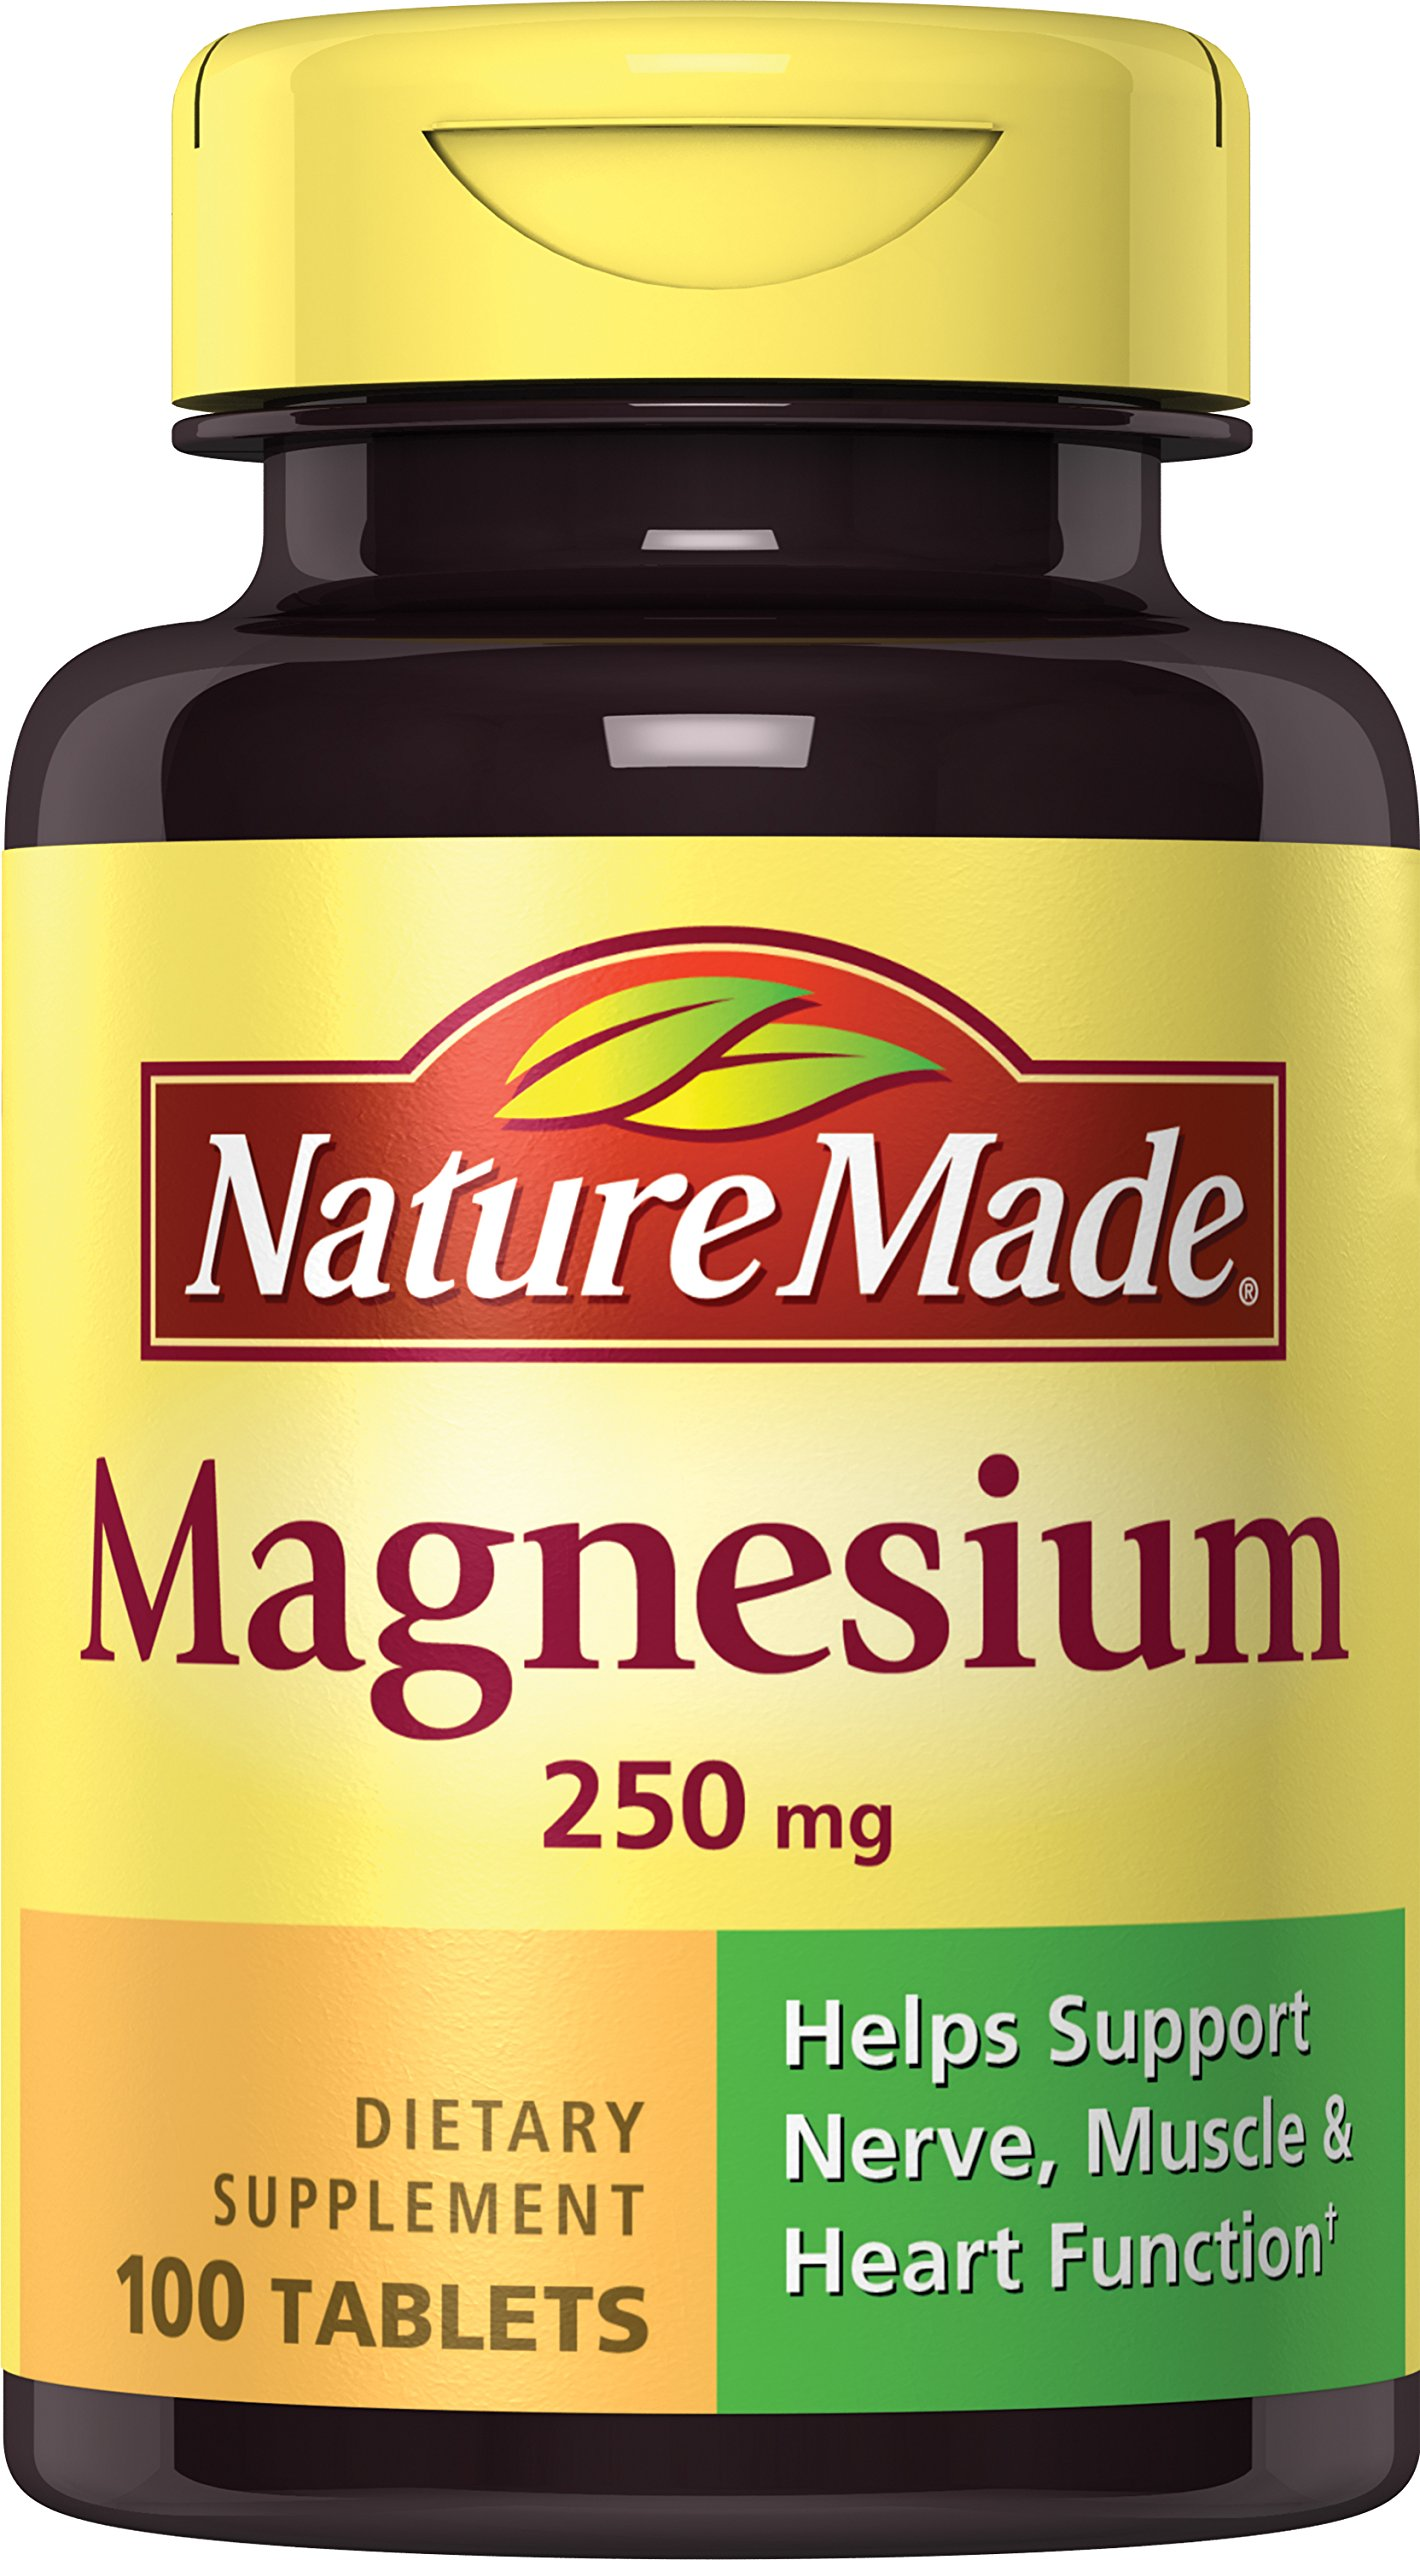 Nature Made Magnesium (Oxide) 250 mg Tablets 100 Ct product image